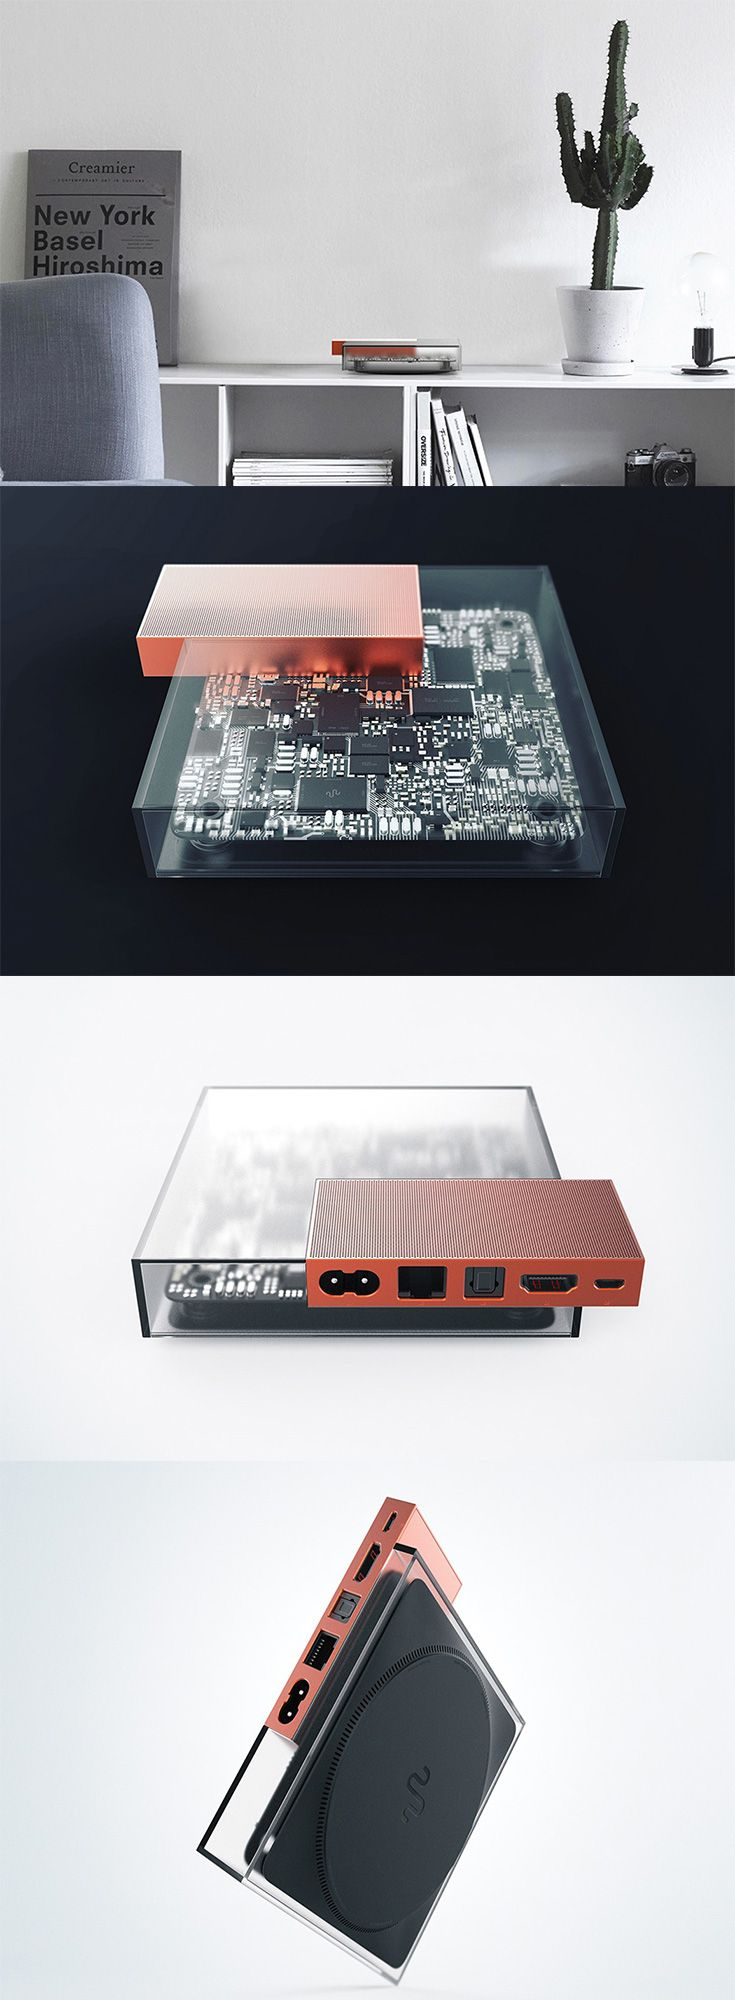 The 'I/O TV set-top box' focuses on visibility in the form of a transparent case that gives users a look into the inner workings of the devicei, its circuitry is proudly on display for a unique technical aesthetic... READ MORE at Yanko Design !